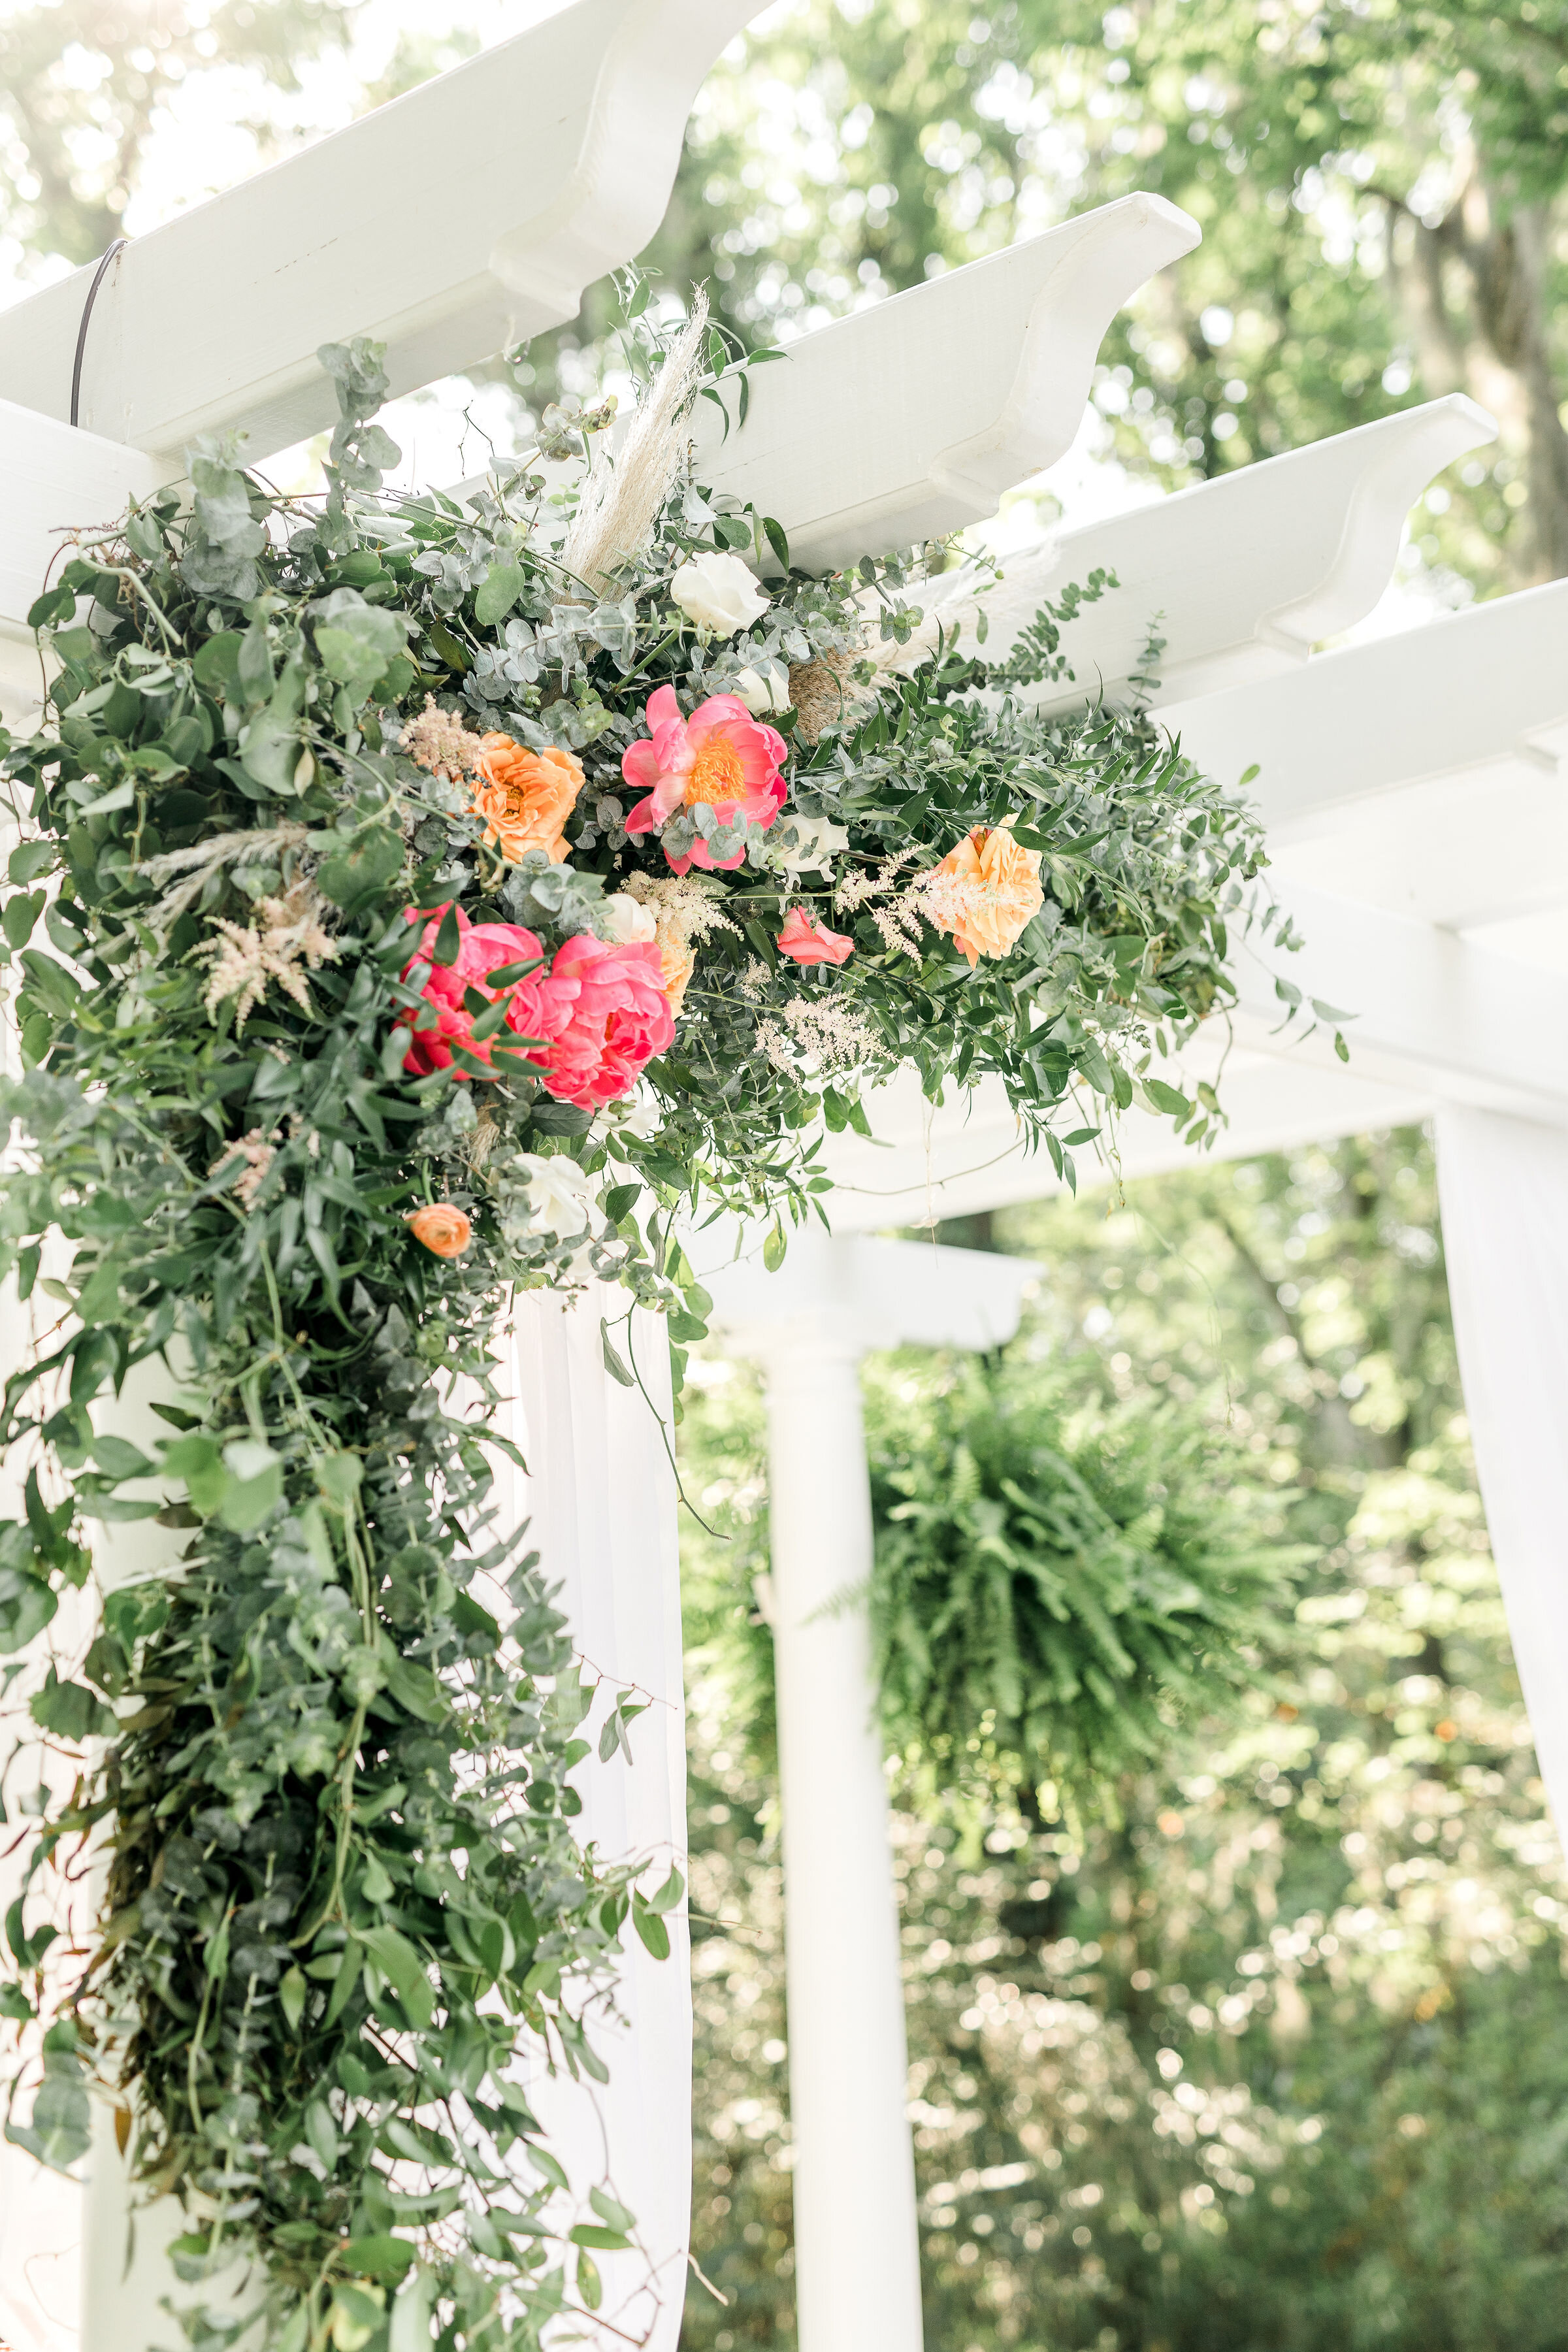 hanging-flower-design-pink-and-green-flowers-ceremony-backdrop-flowers-greenery-southern-wedding.jpg